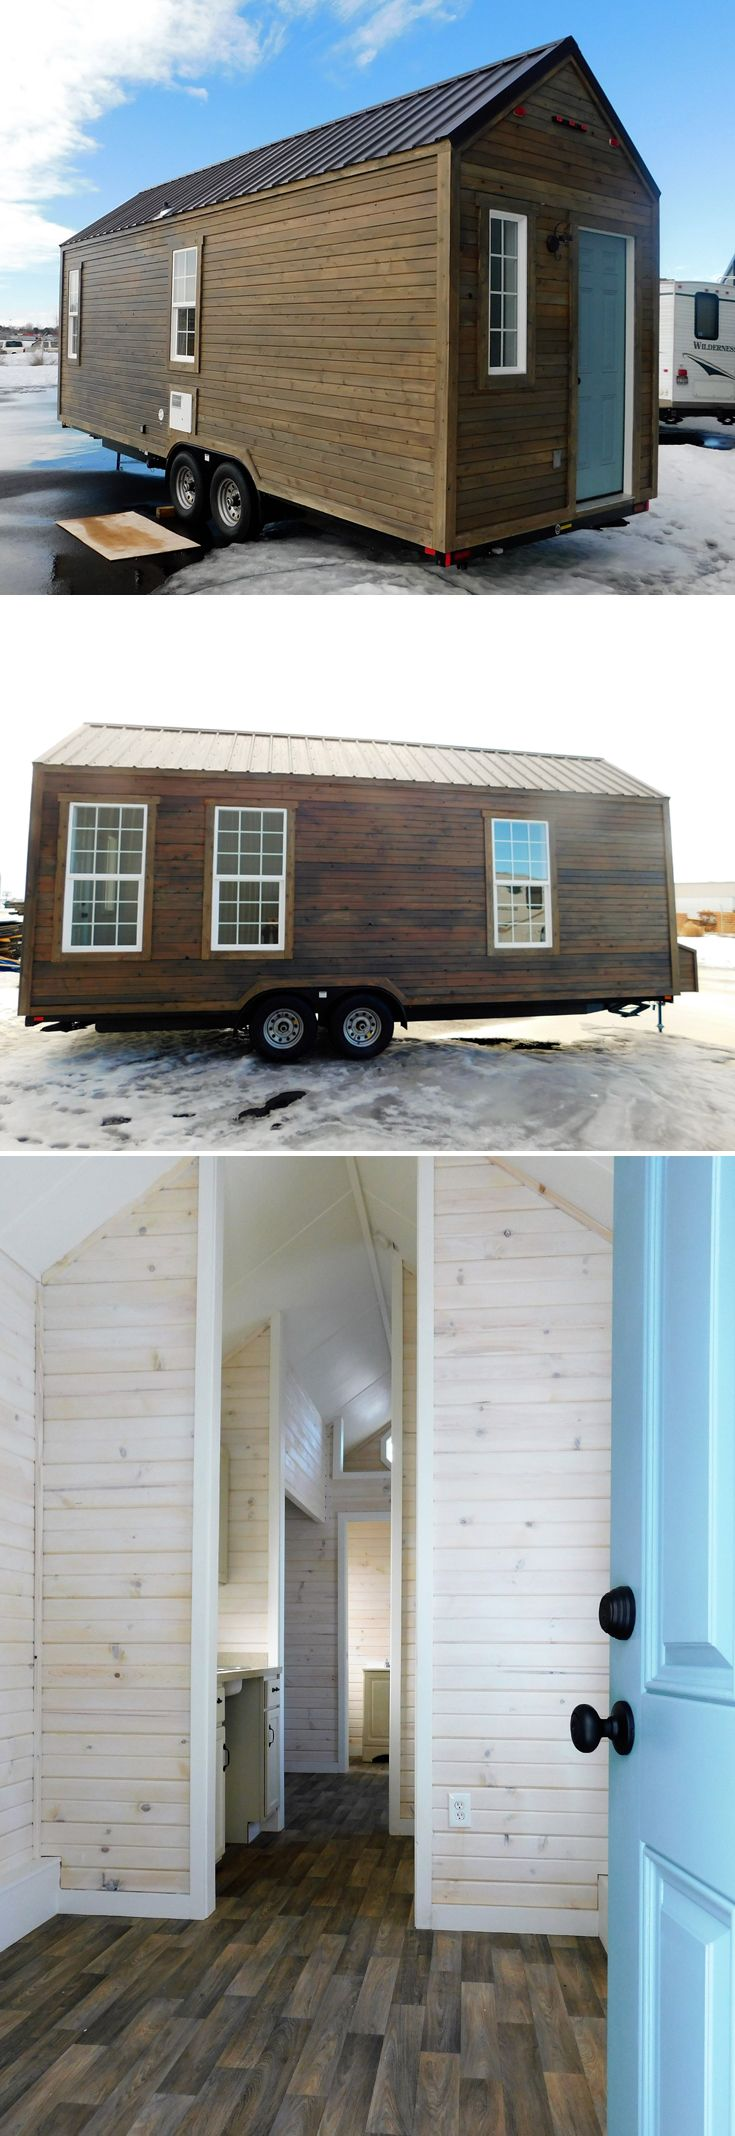 17 best images about tiny house love on pinterest tiny for Tiny house with main floor bedroom